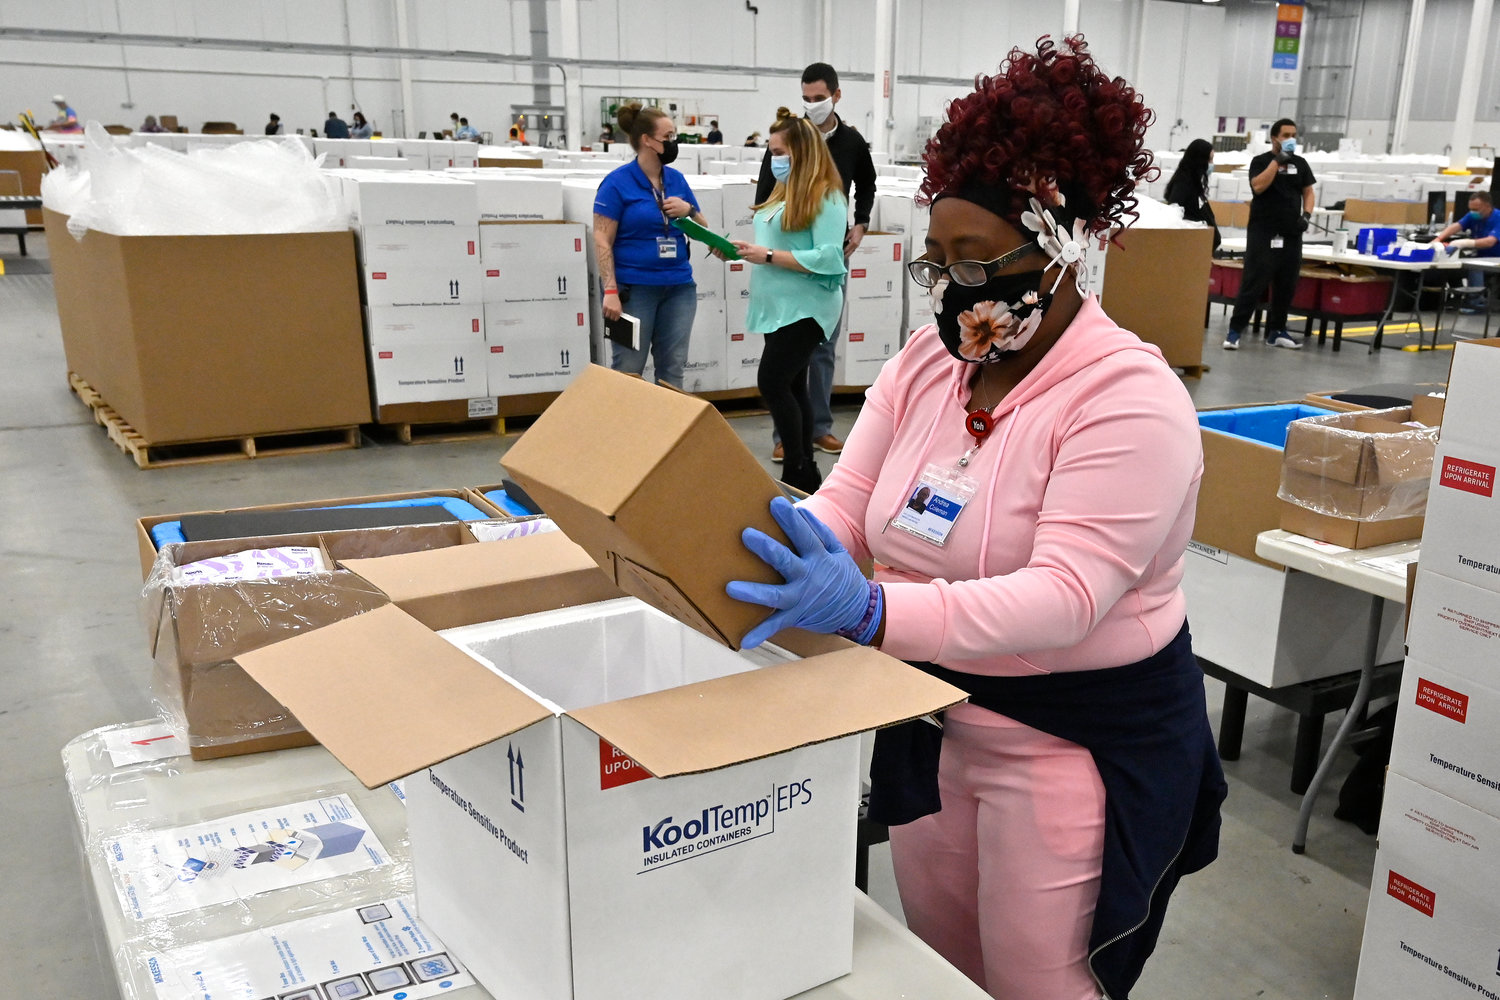 SHIPPING OUT — An employee with the McKesson Corp. packs a box of the Johnson & Johnson COVID-19 vaccine into a cooler for shipping from their facility in Shepherdsville, Ky.